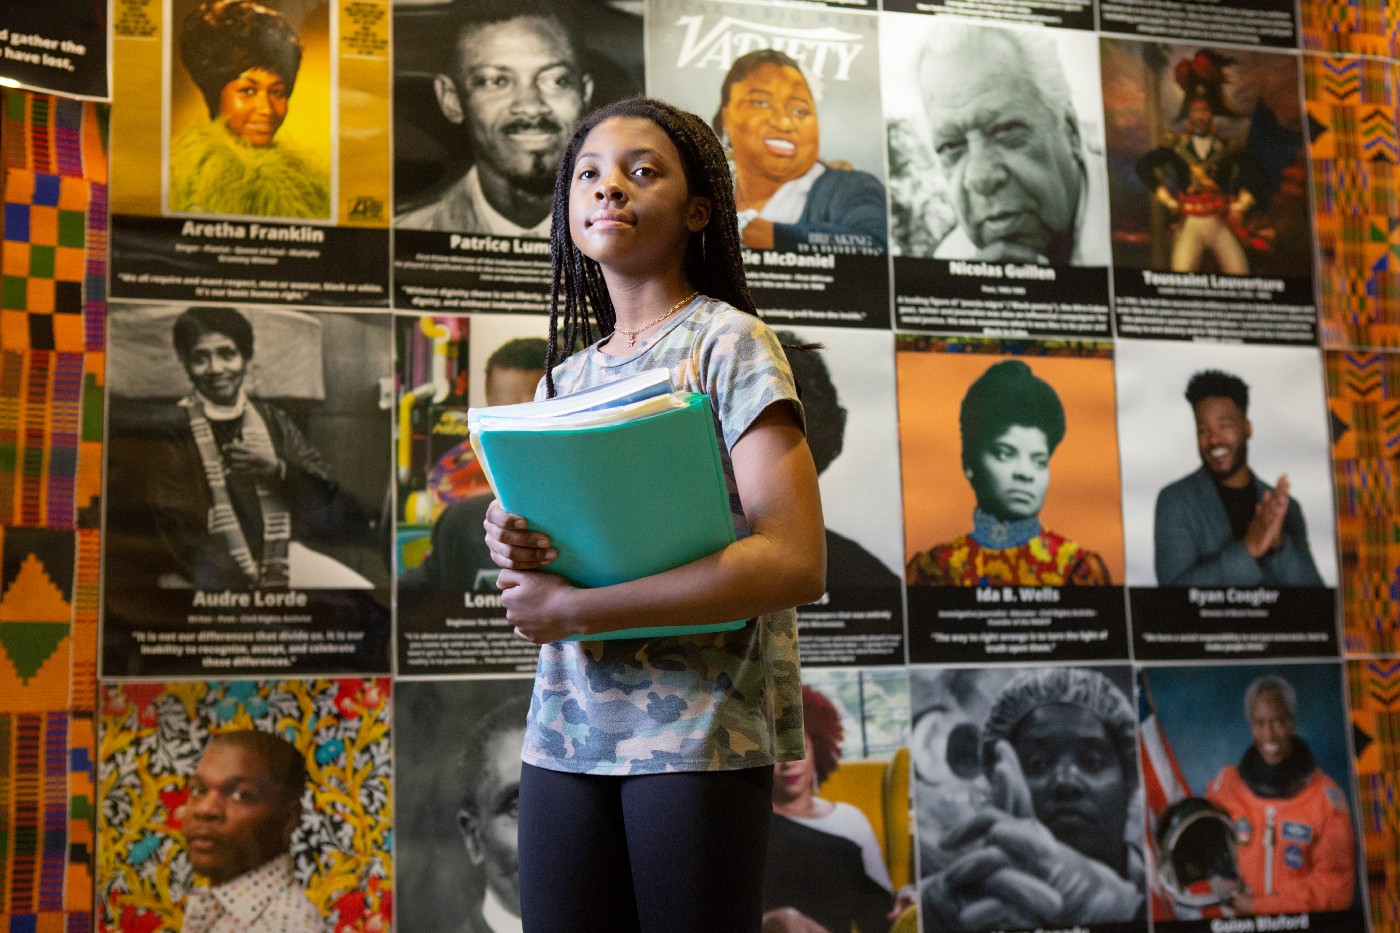 A seventh grader walks by a Black History Month display at Sutton Middle School on her way to class.